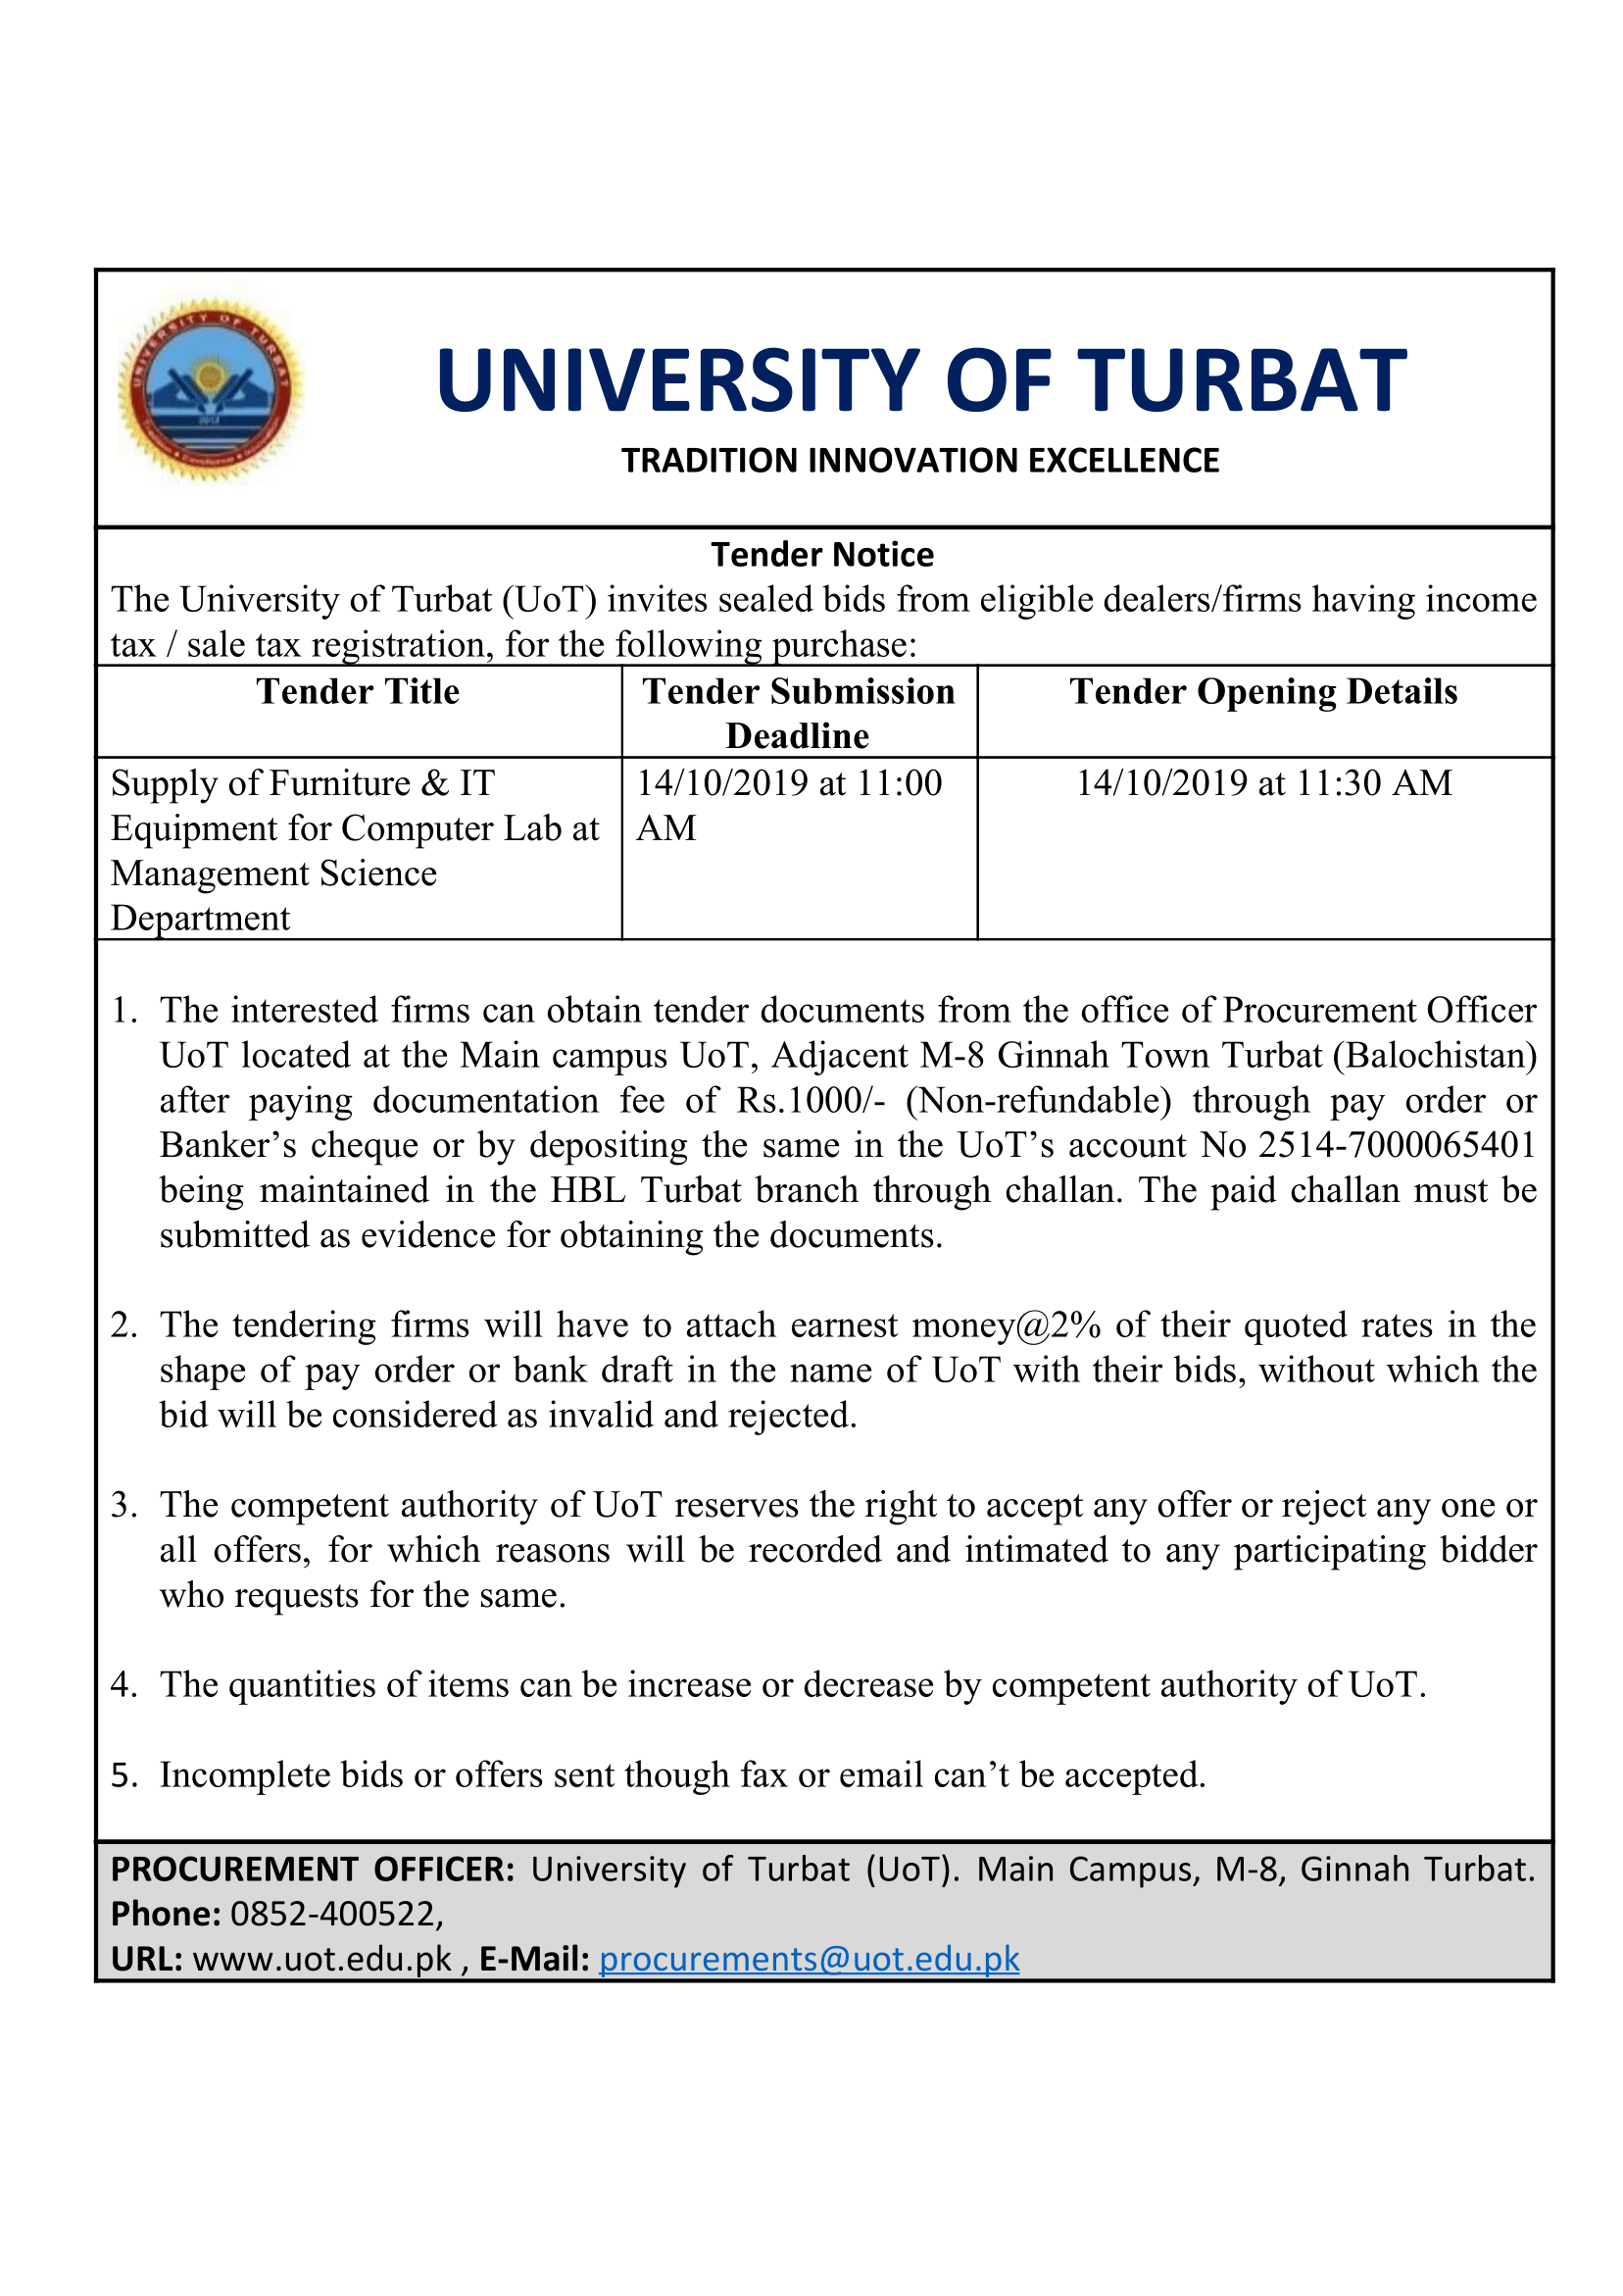 Tender Notice for Supply of Furniture & IT Equipment for Computer Lab